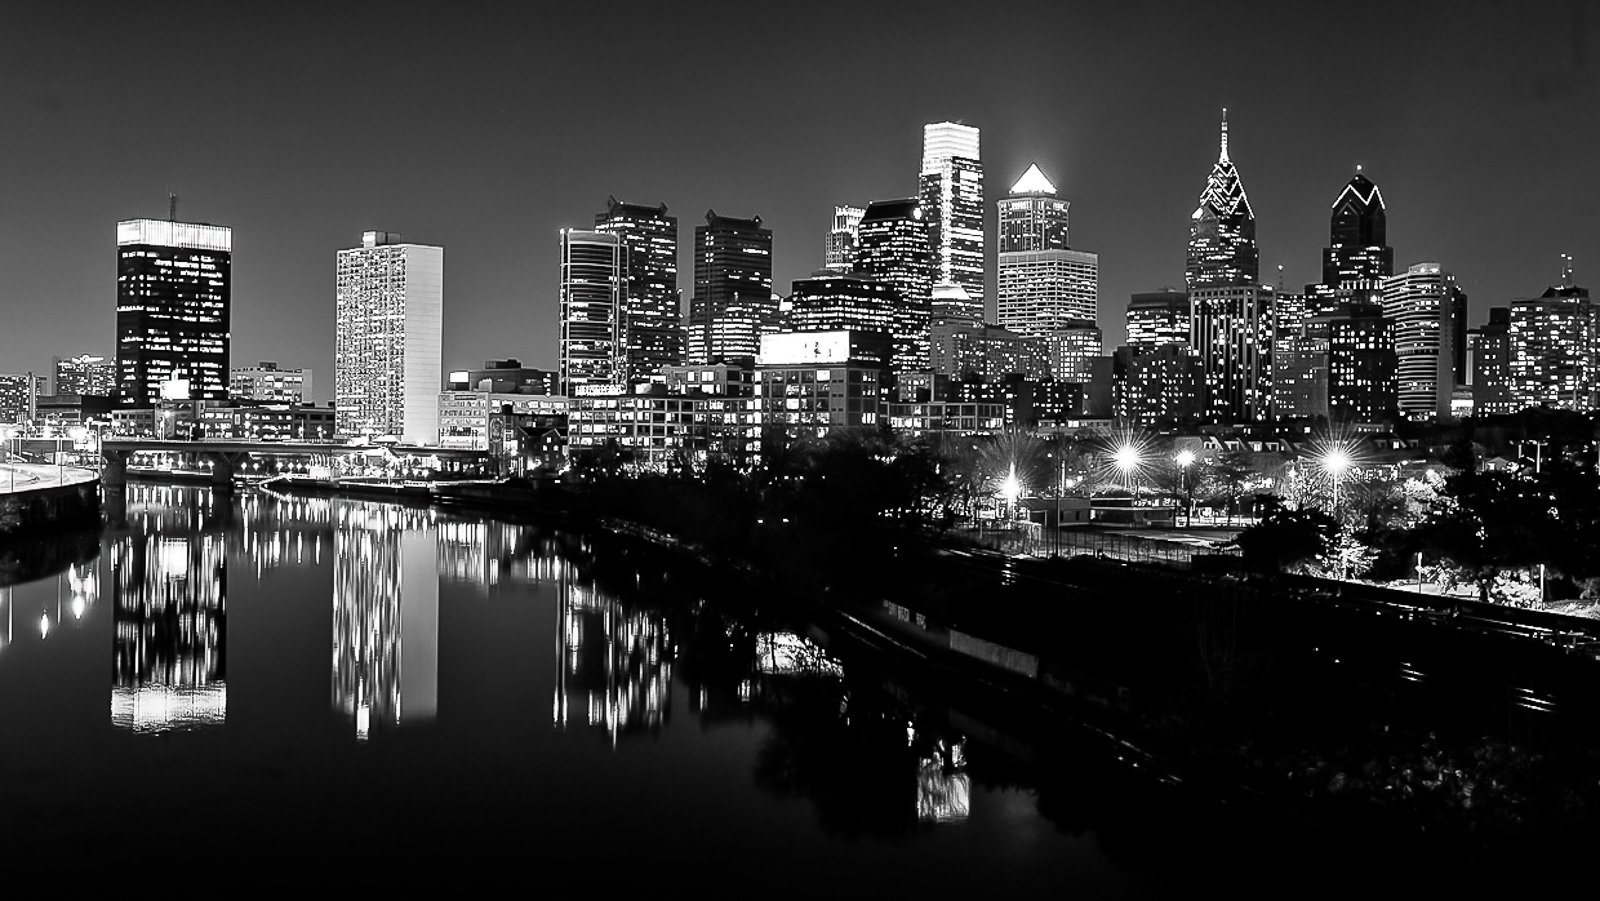 from 23th street bridge Philadelphia